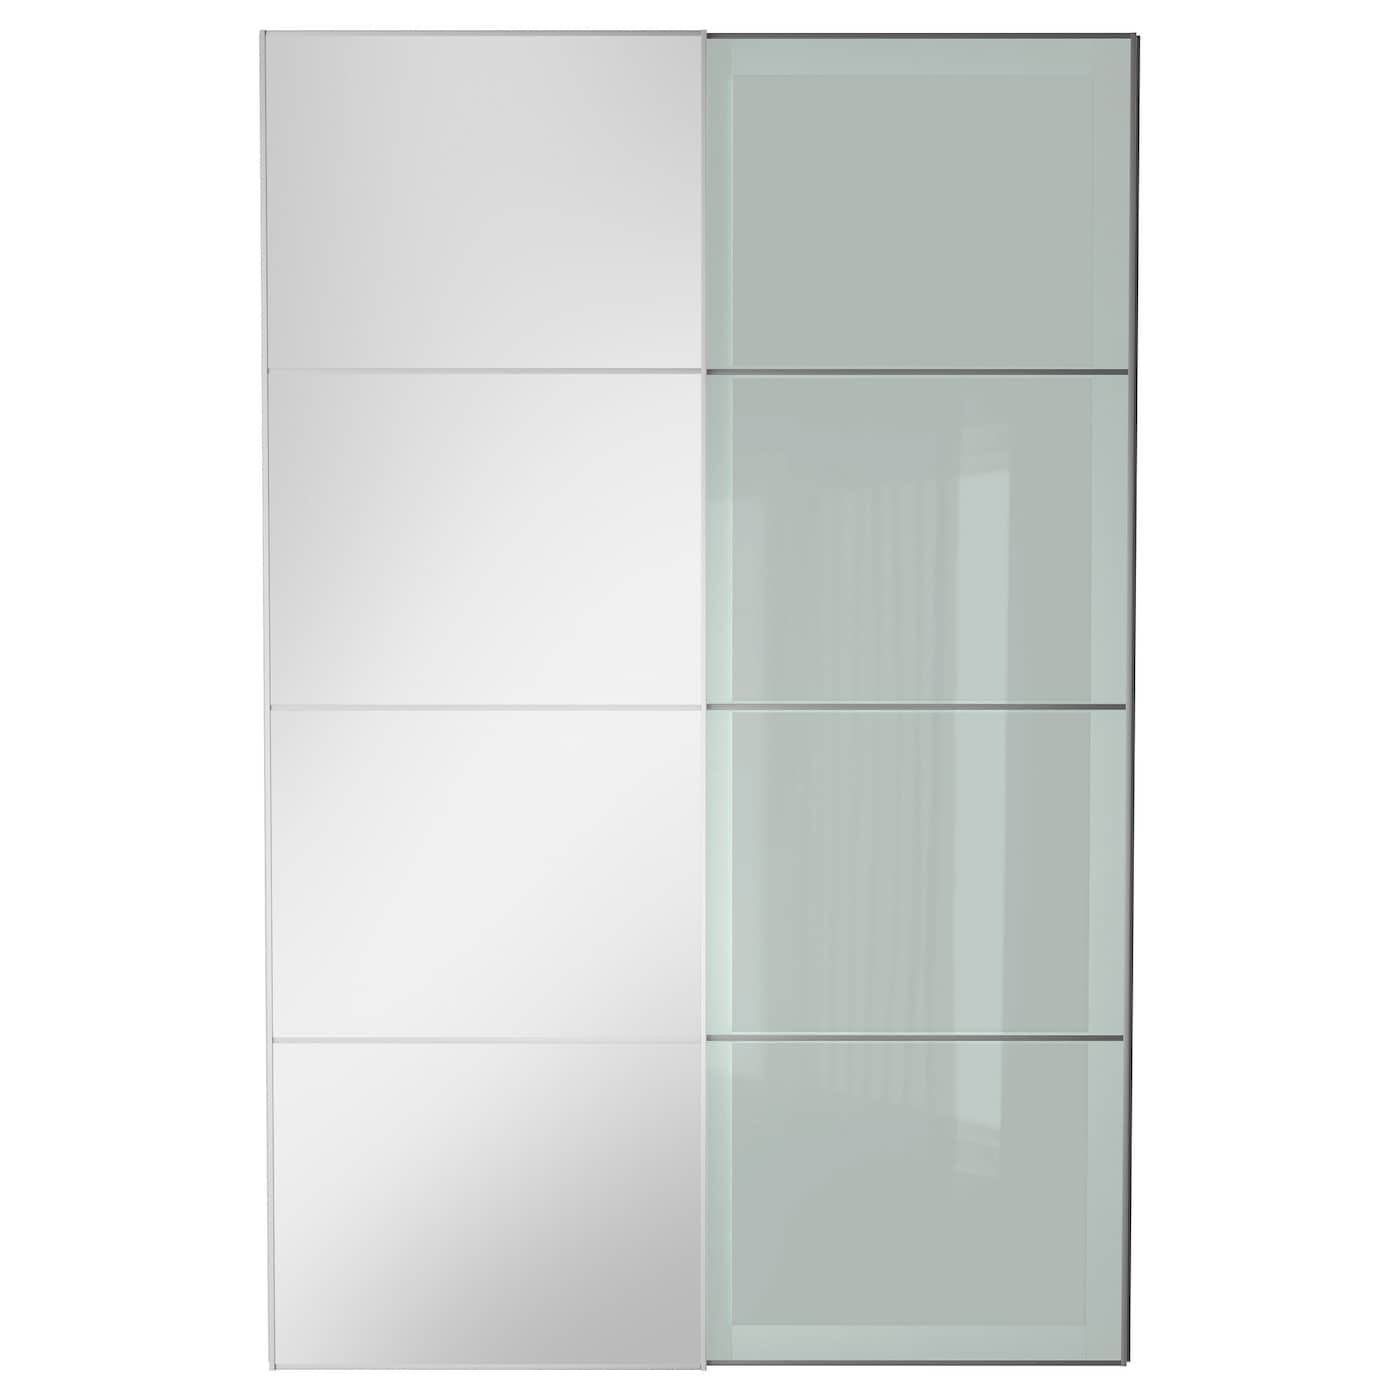 Auli sekken pair of sliding doors mirror glass frosted for Armoire porte coulissante miroir ikea